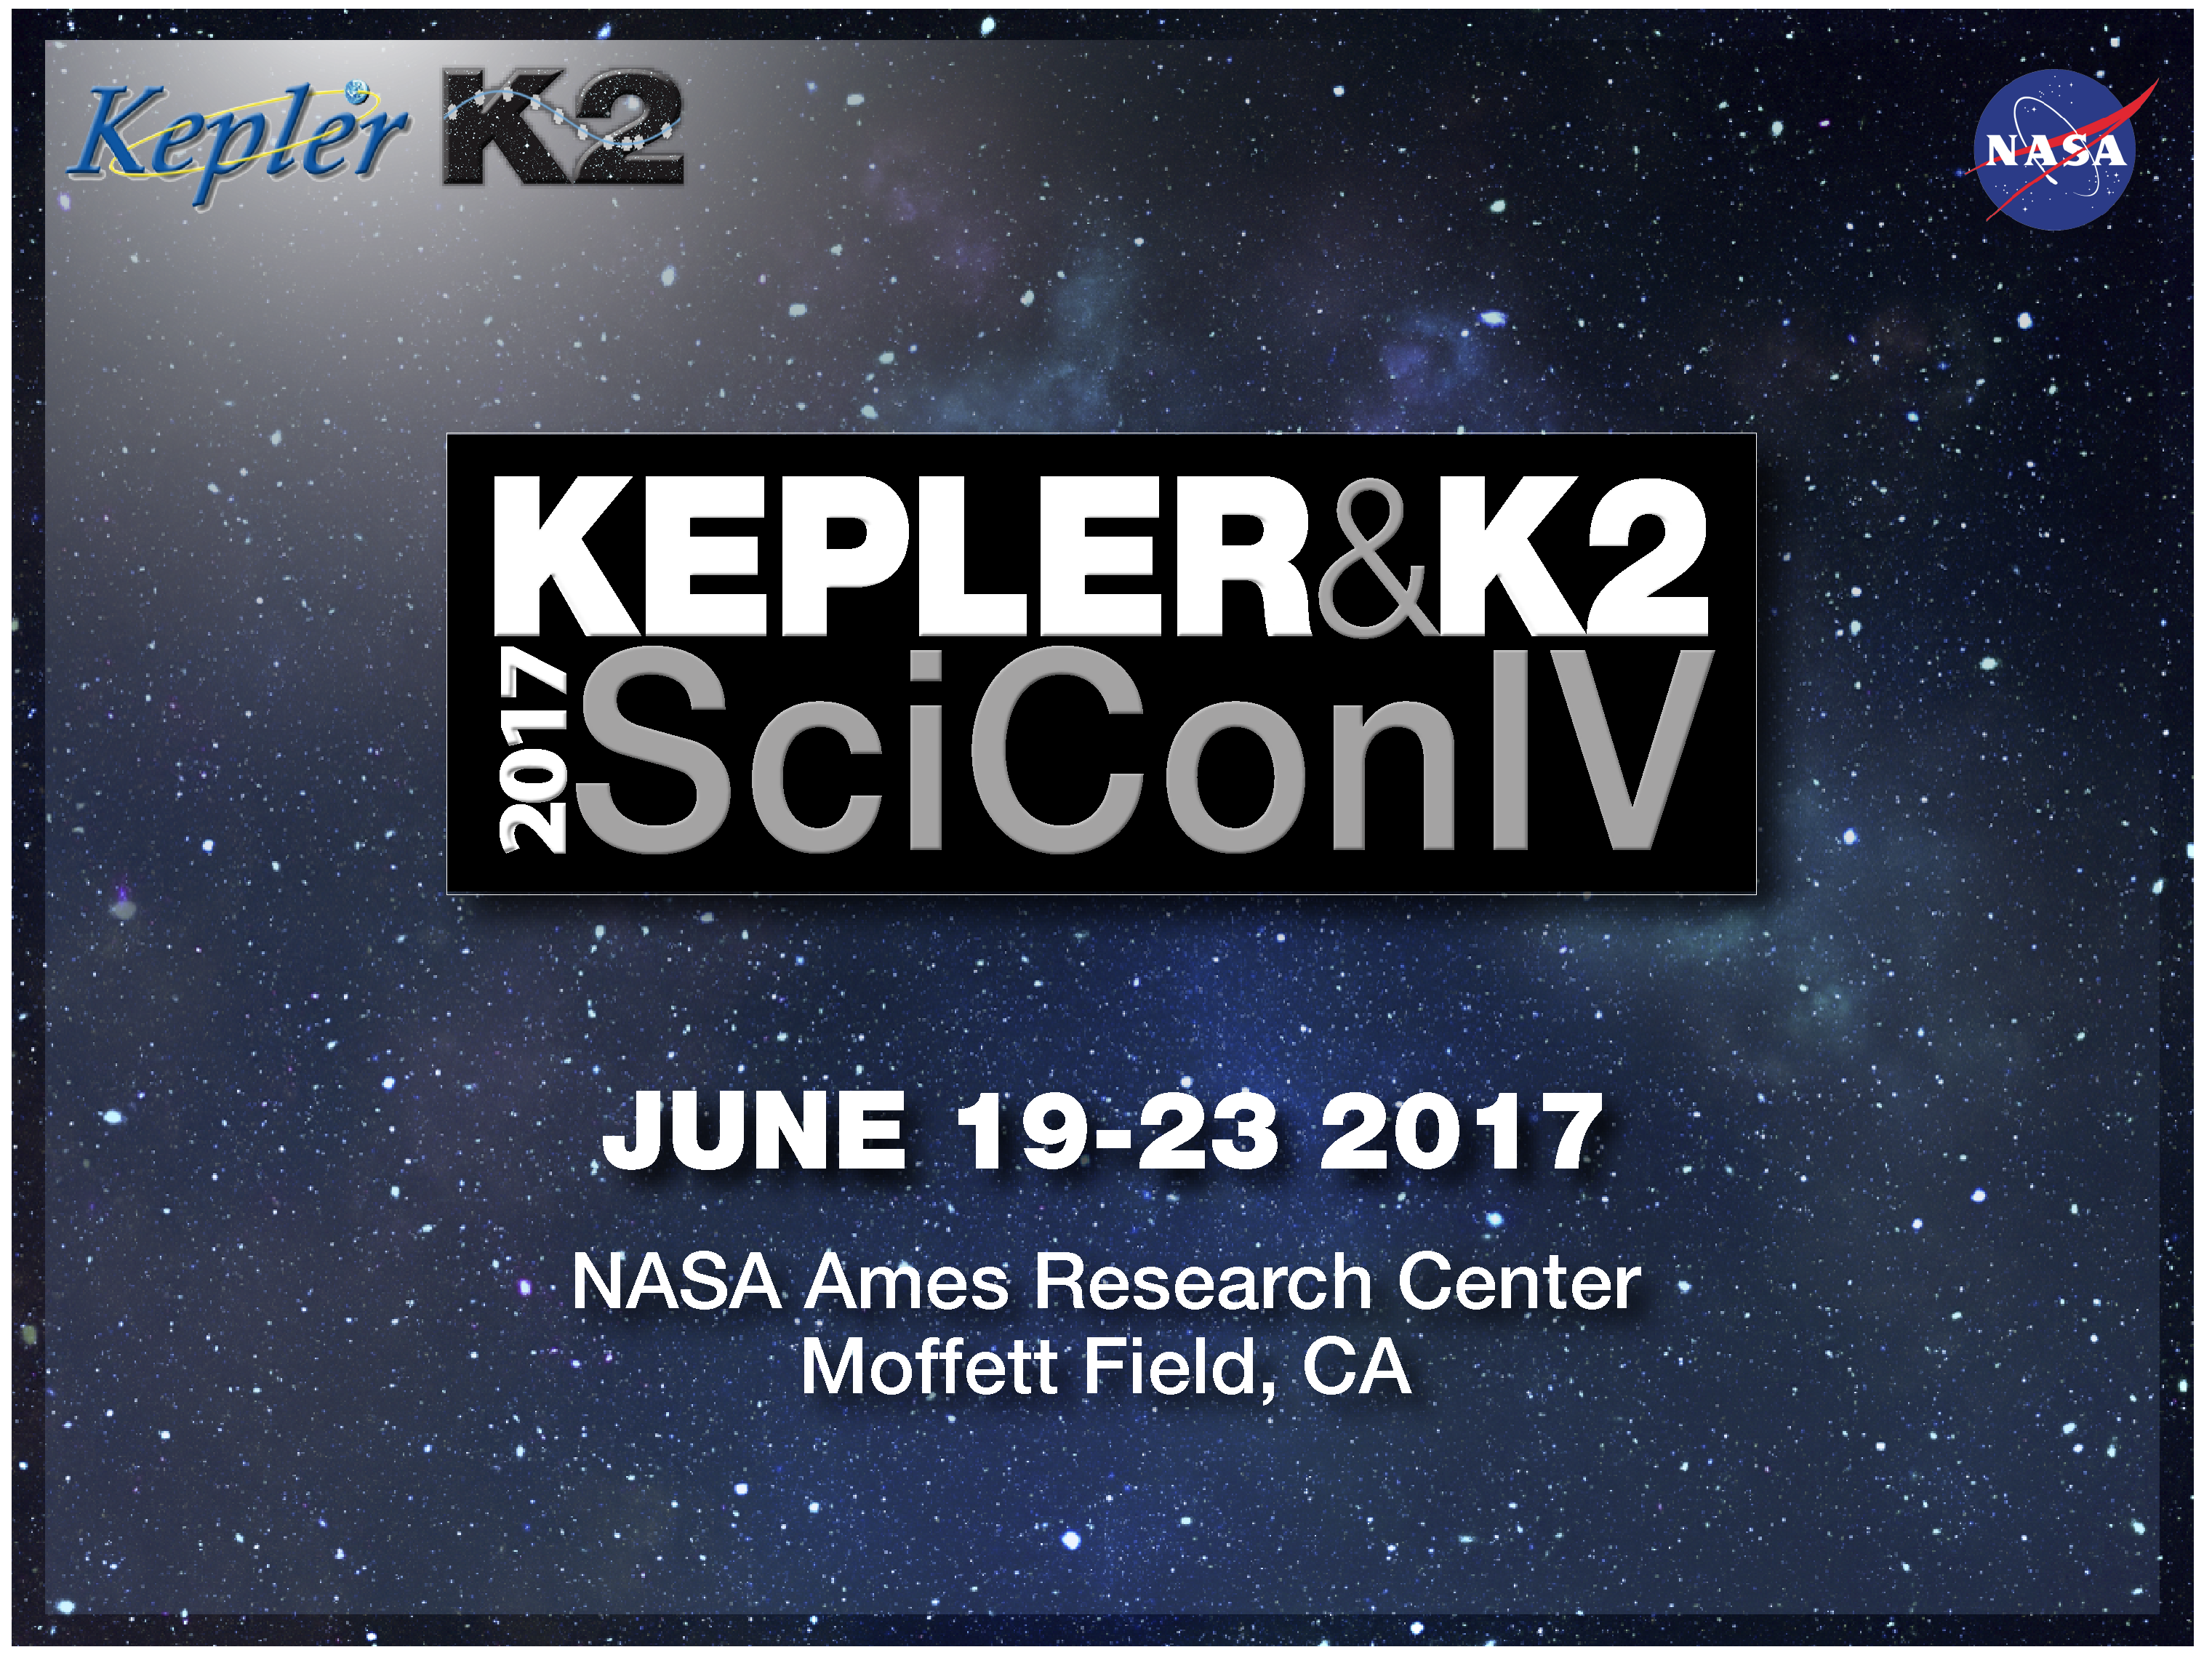 The Kepler & K2 Science Conference takes place June 19-23, 2017. Researchers and scientists unable to attend in-person can attend remotely. Image credit: None